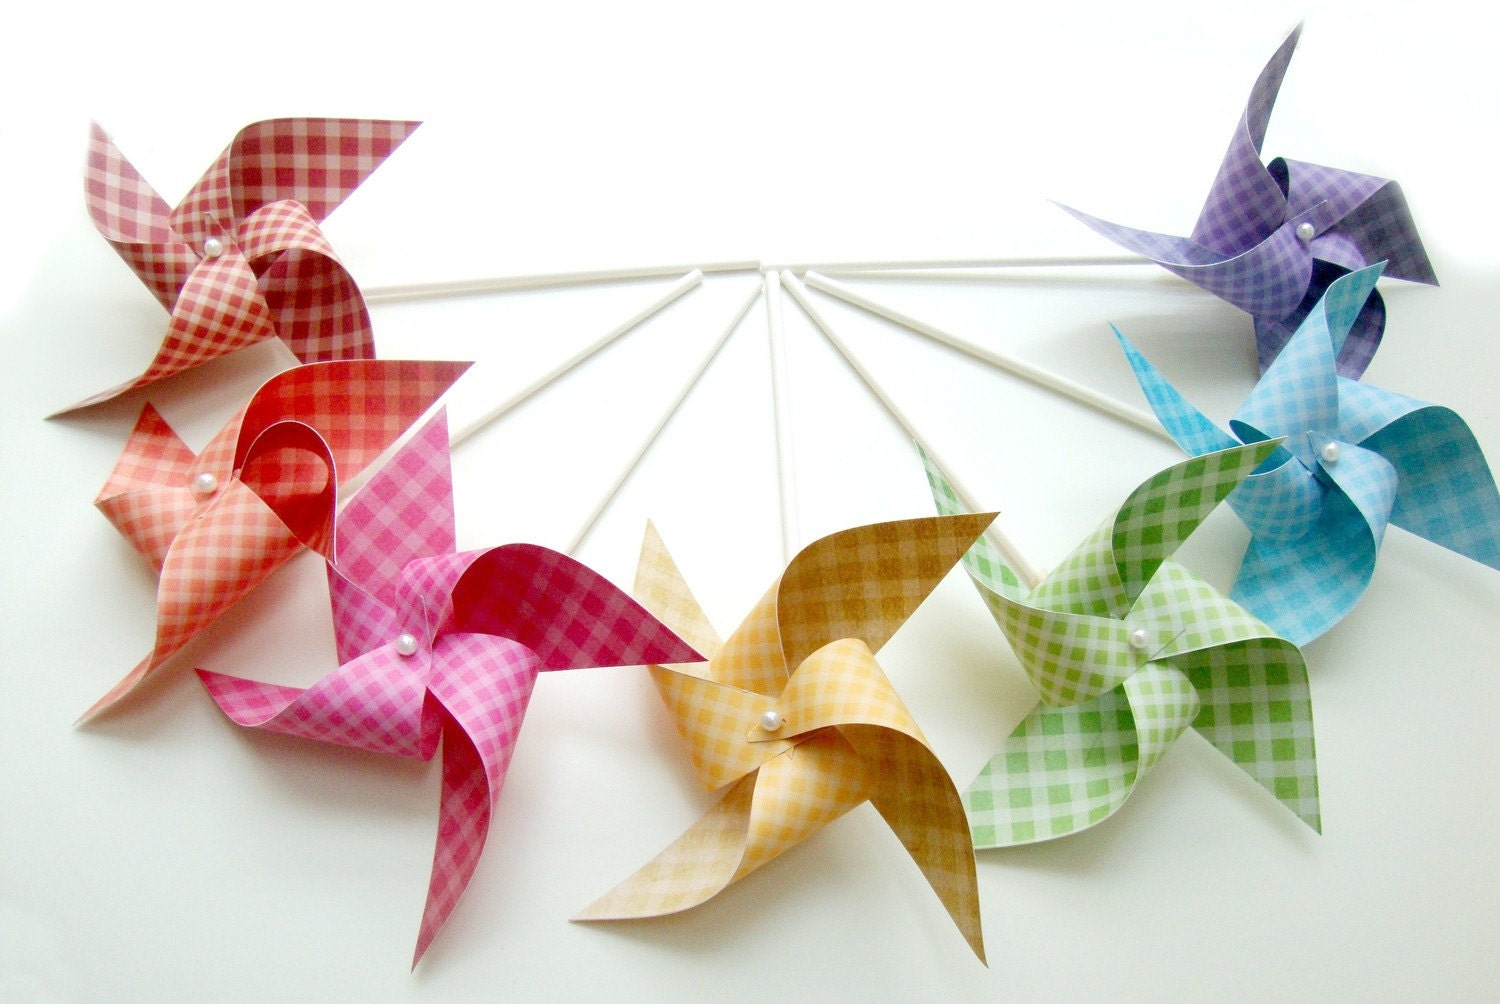 GINGHAM RAINBOW set of 7 mini pinwheels